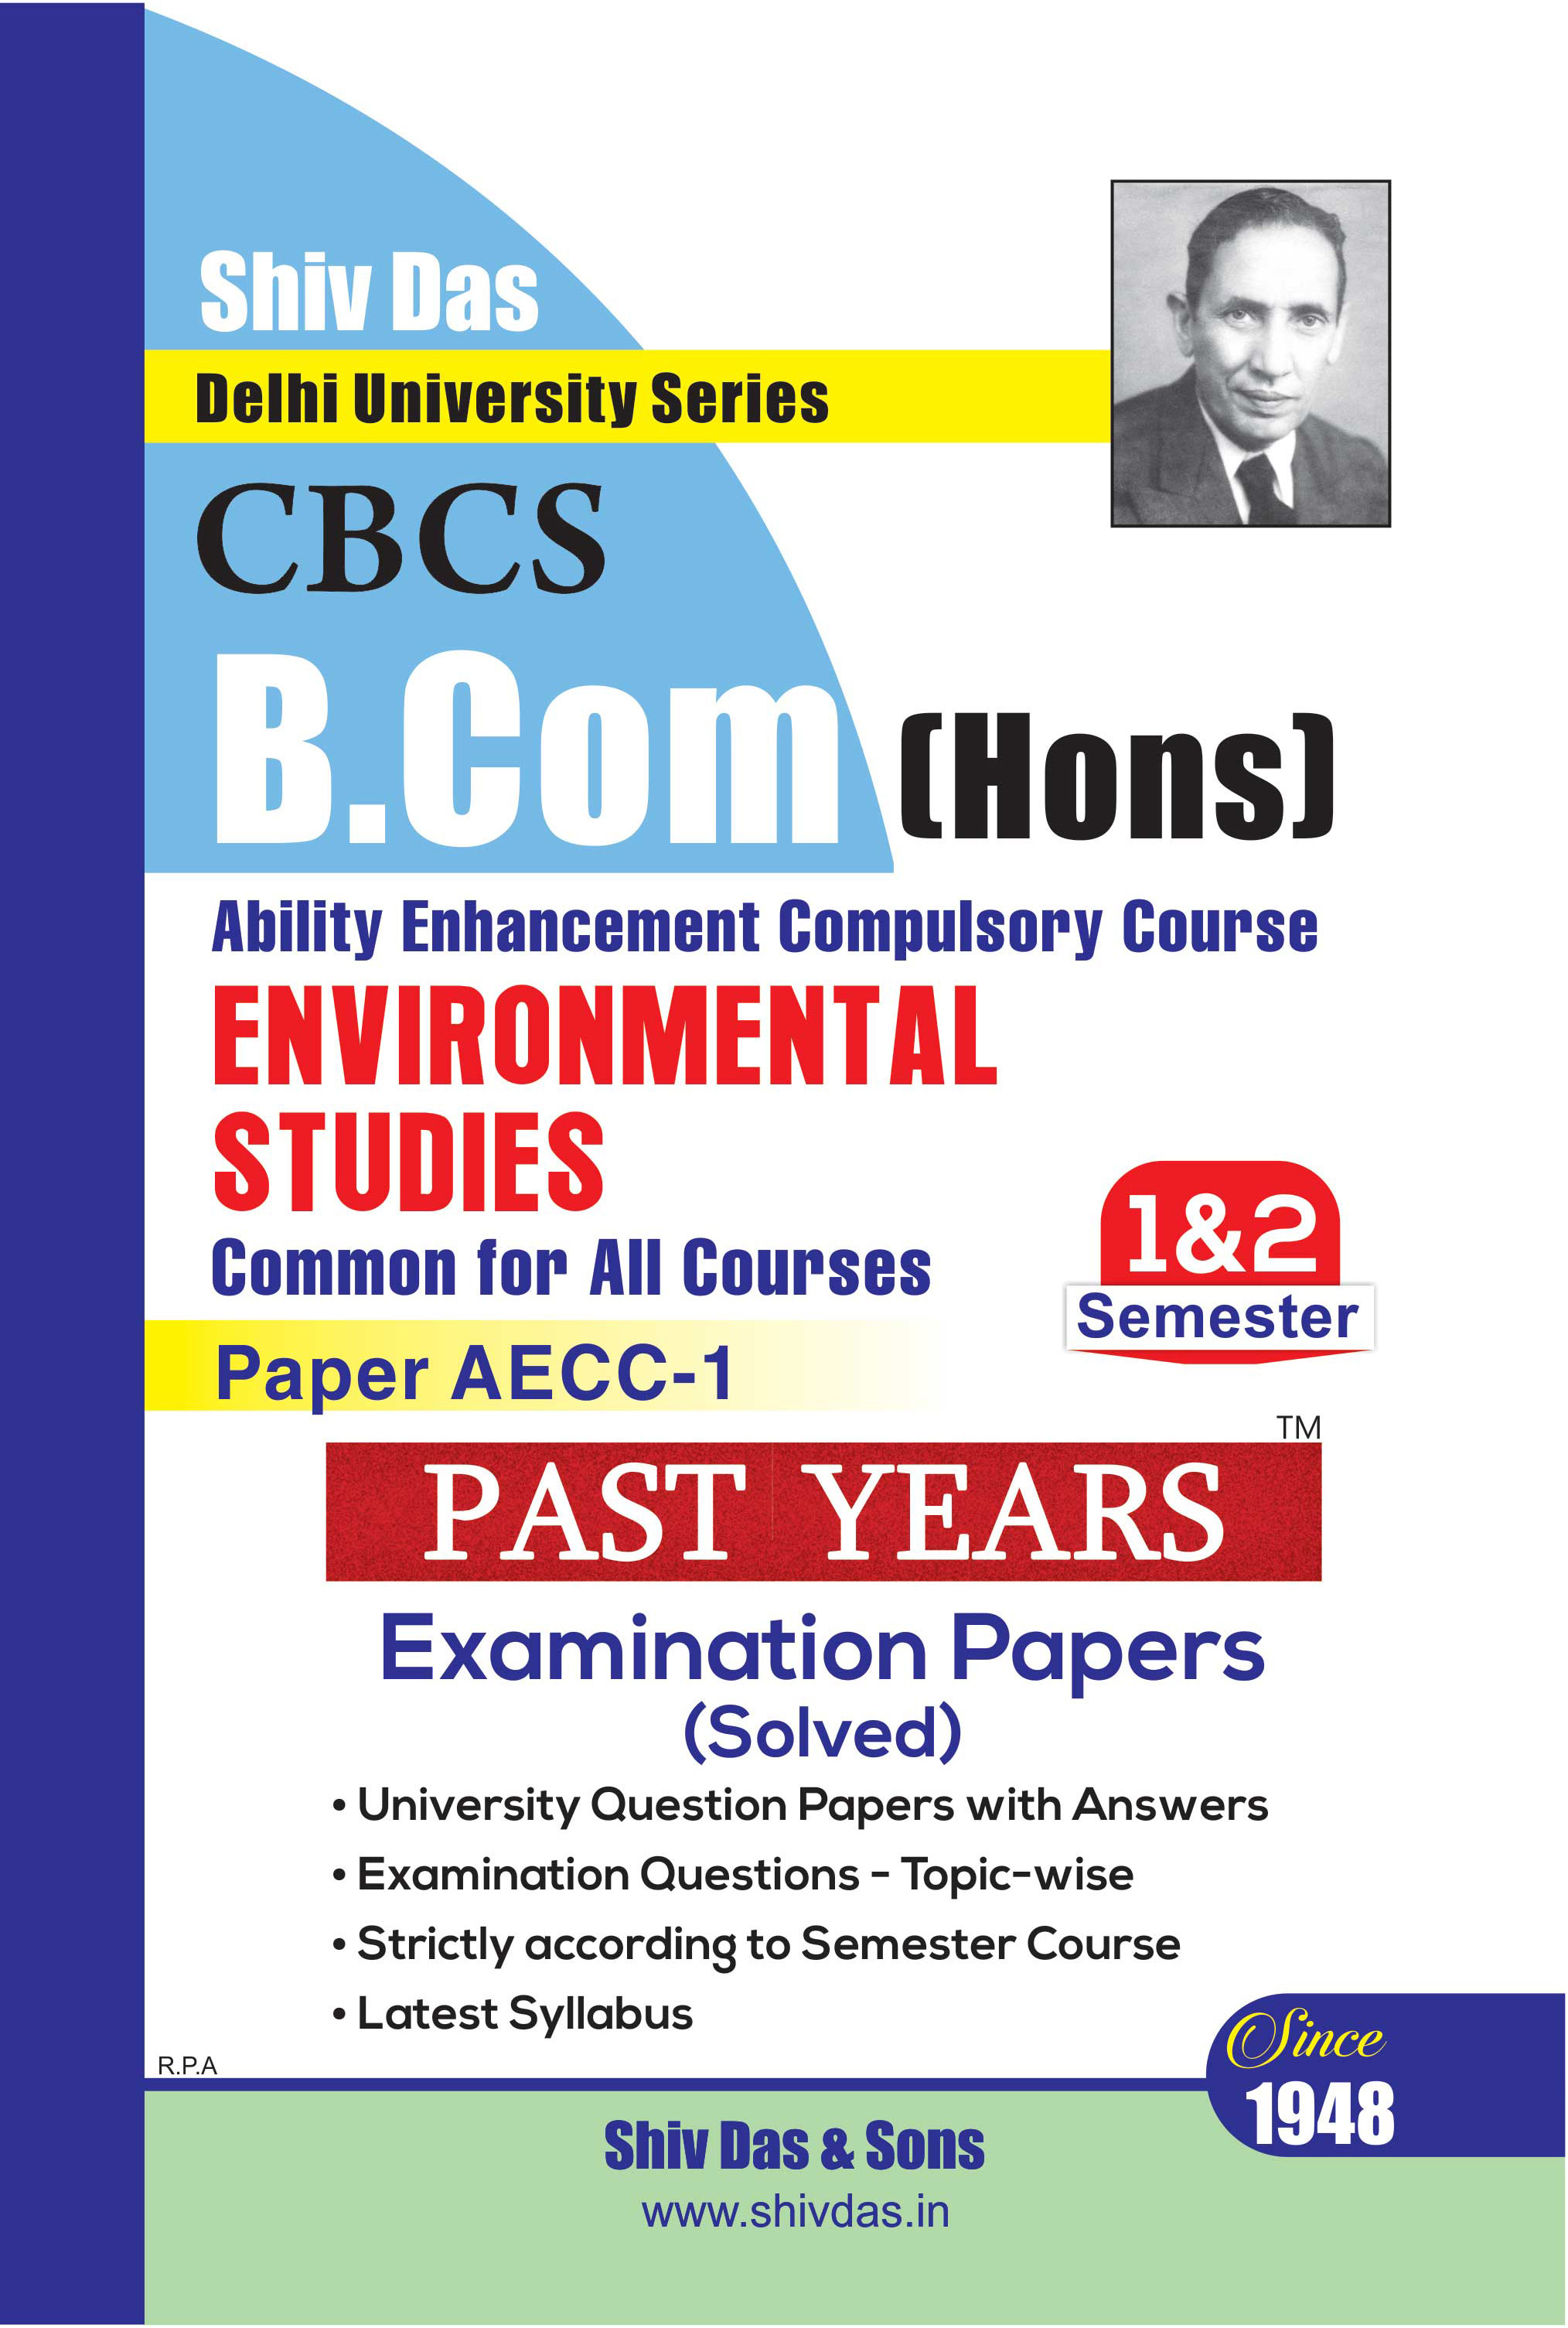 Environmental Science for B.Com Hons Semester 2 for Delhi University by Shiv Das